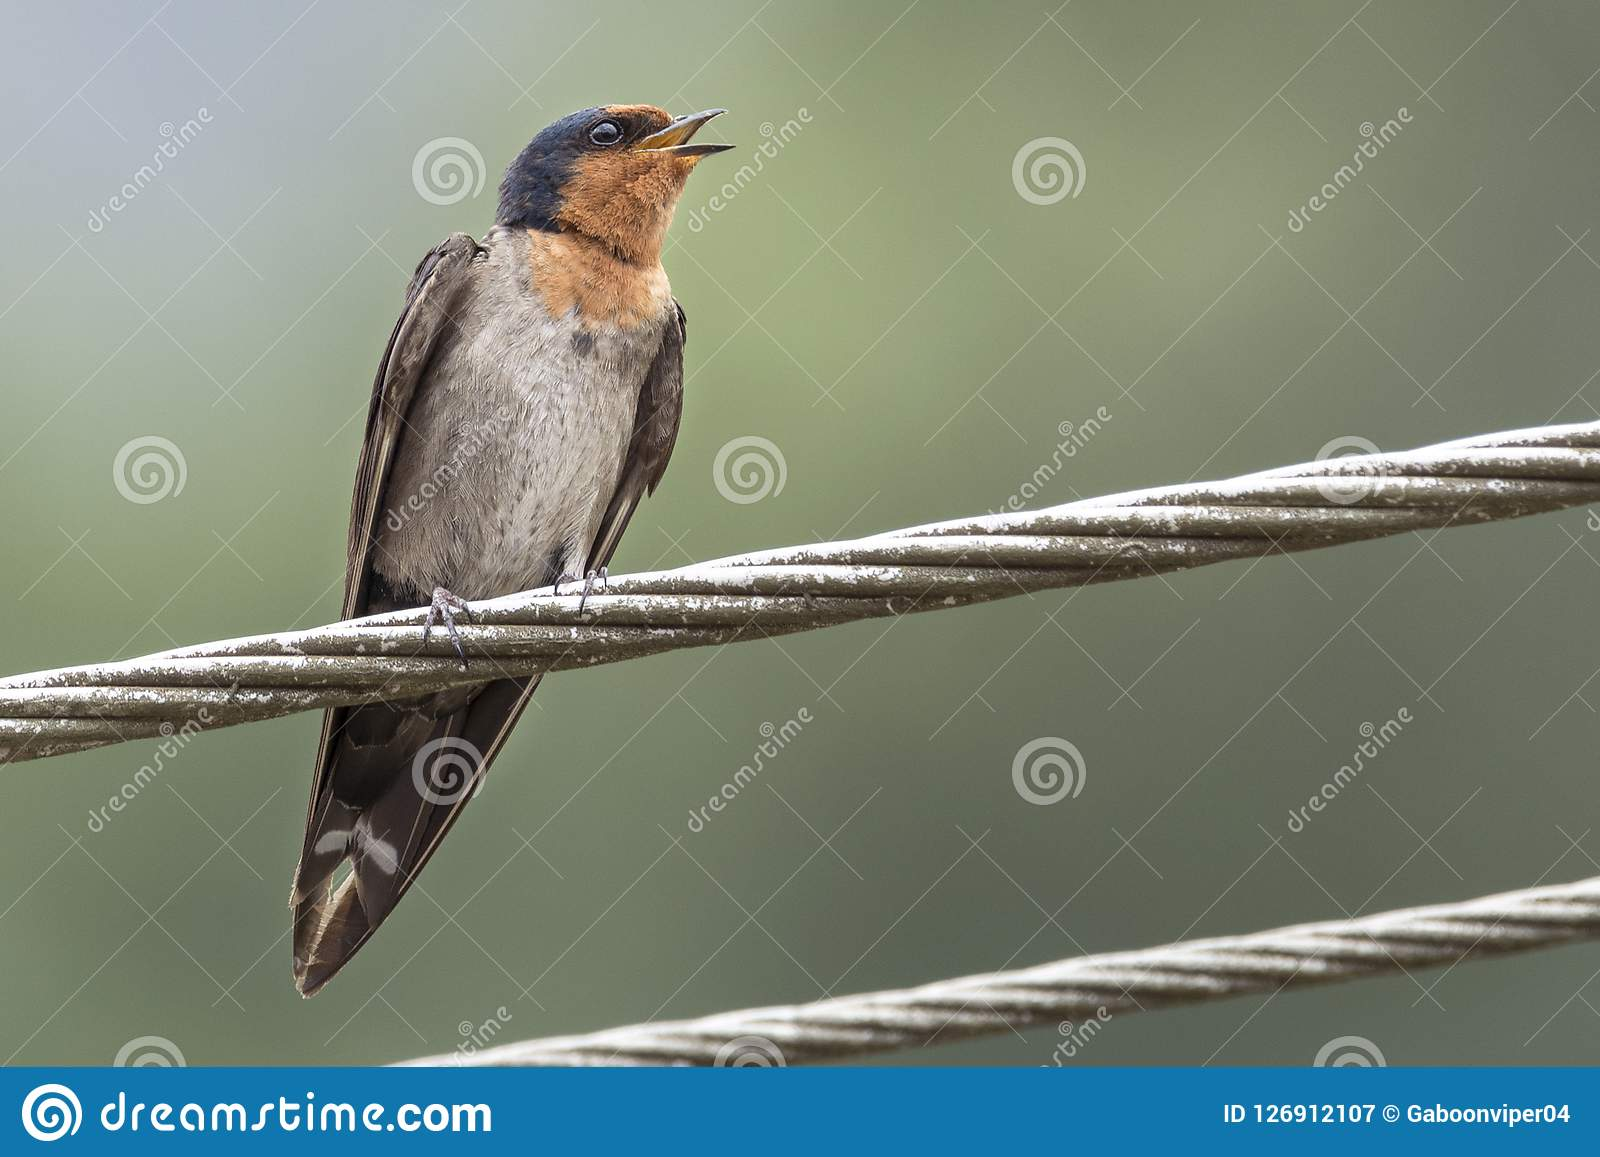 A Hill Swallow Bird Perched On Power Lines Stock Image ...